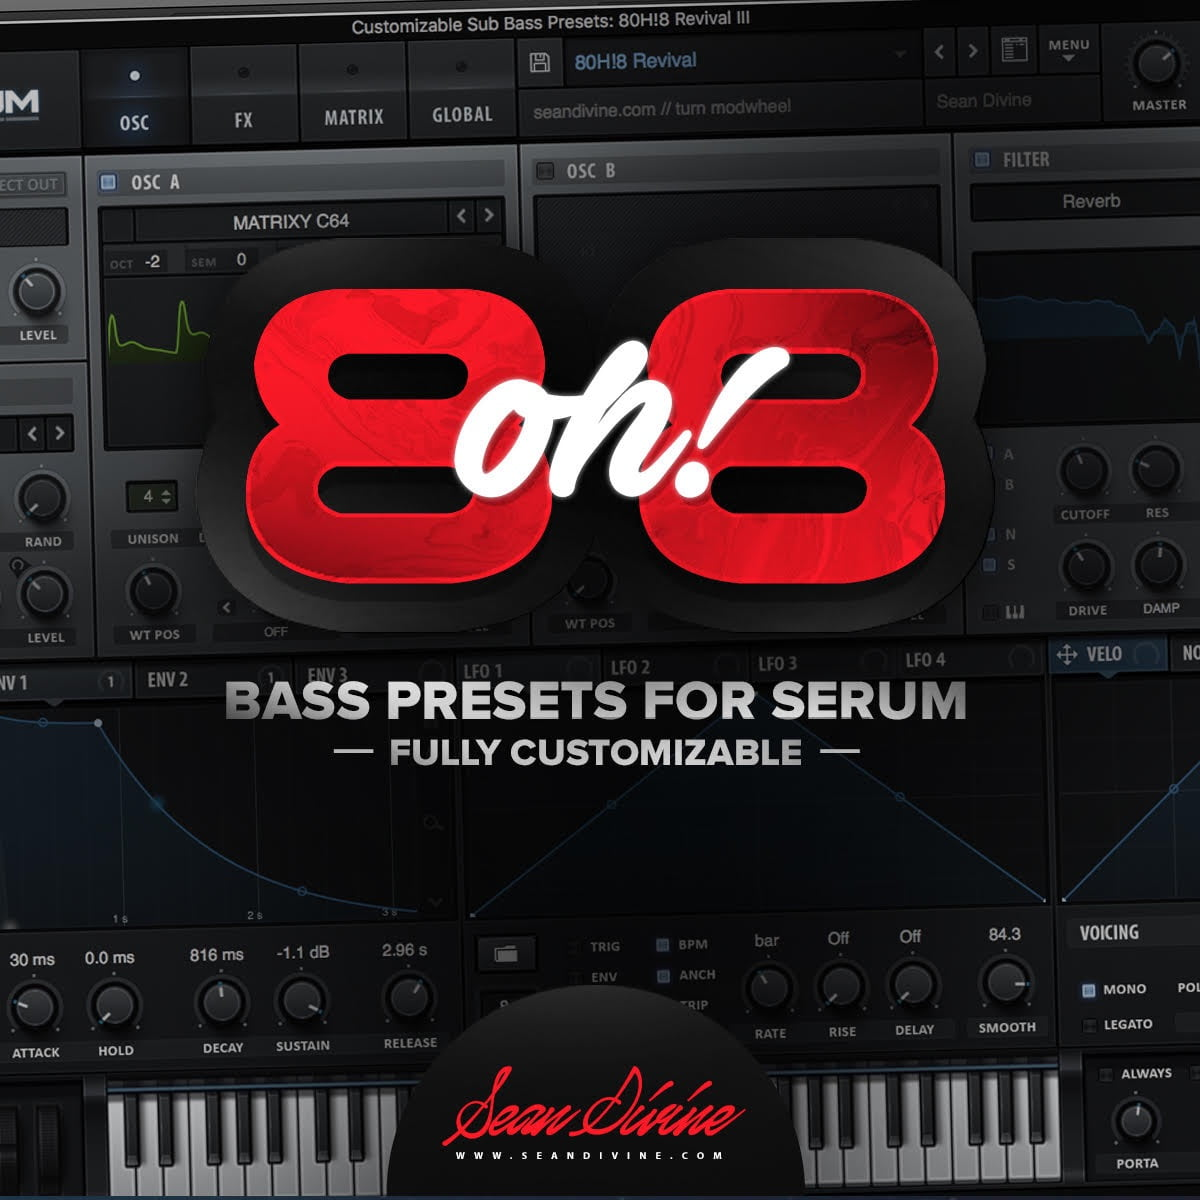 8oh!8 Serum Presets Collection by Sean Divine released